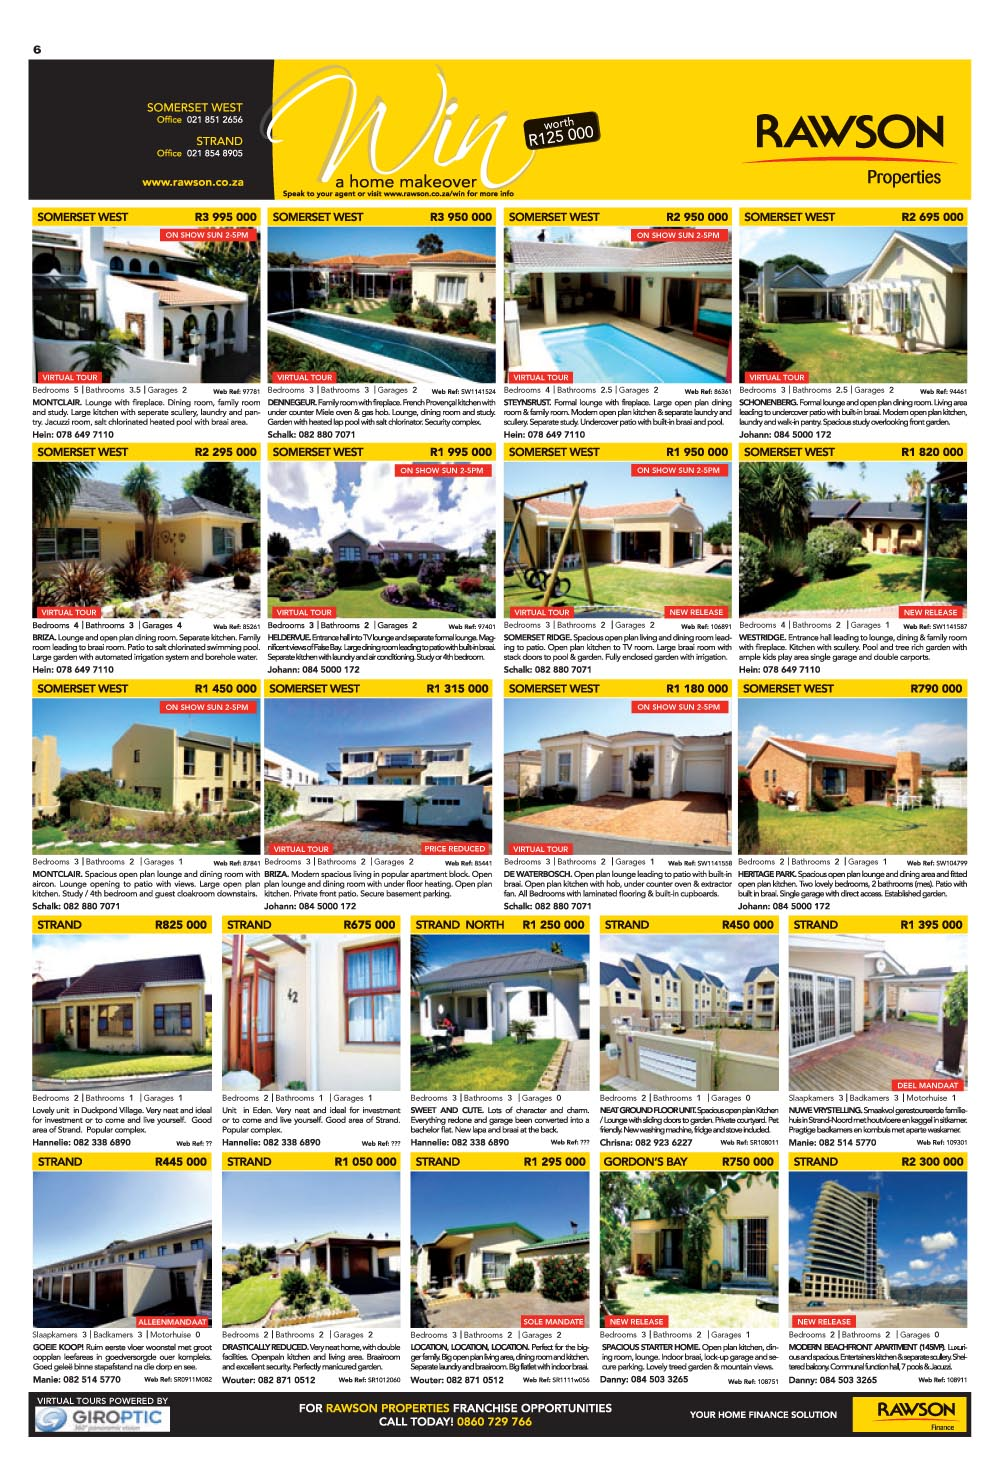 You are browsing images from the article: Property Selection -  February 1st 2012